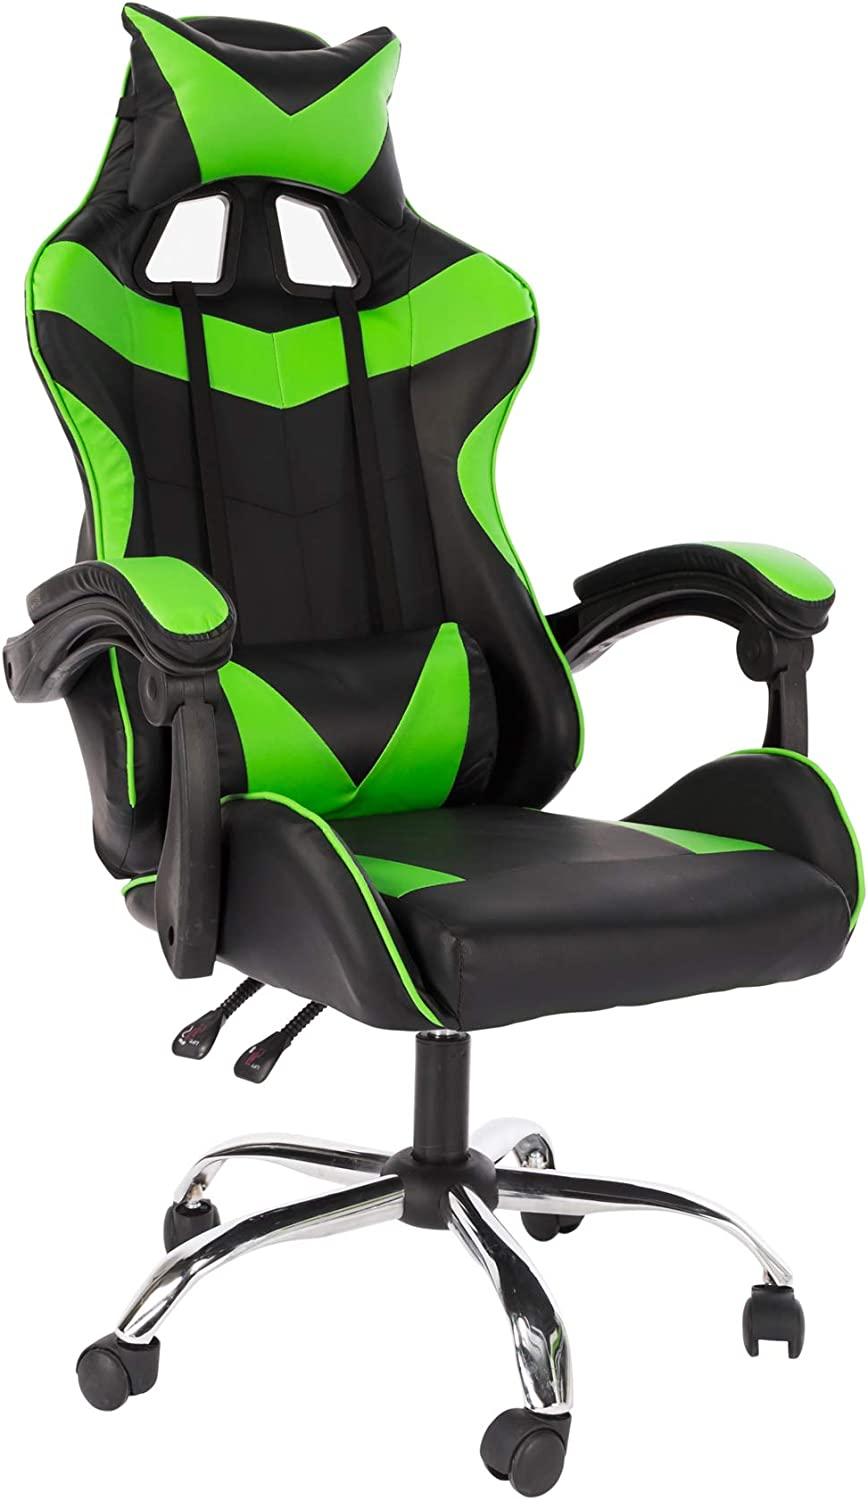 Cosyshow Contrast Bonded Pu Leather Comfortable Adjusted Ergonomic Racing Rock Gaming Chair Reclining Executive Office Desk Chair Head Lumbar Support (Black-Green)